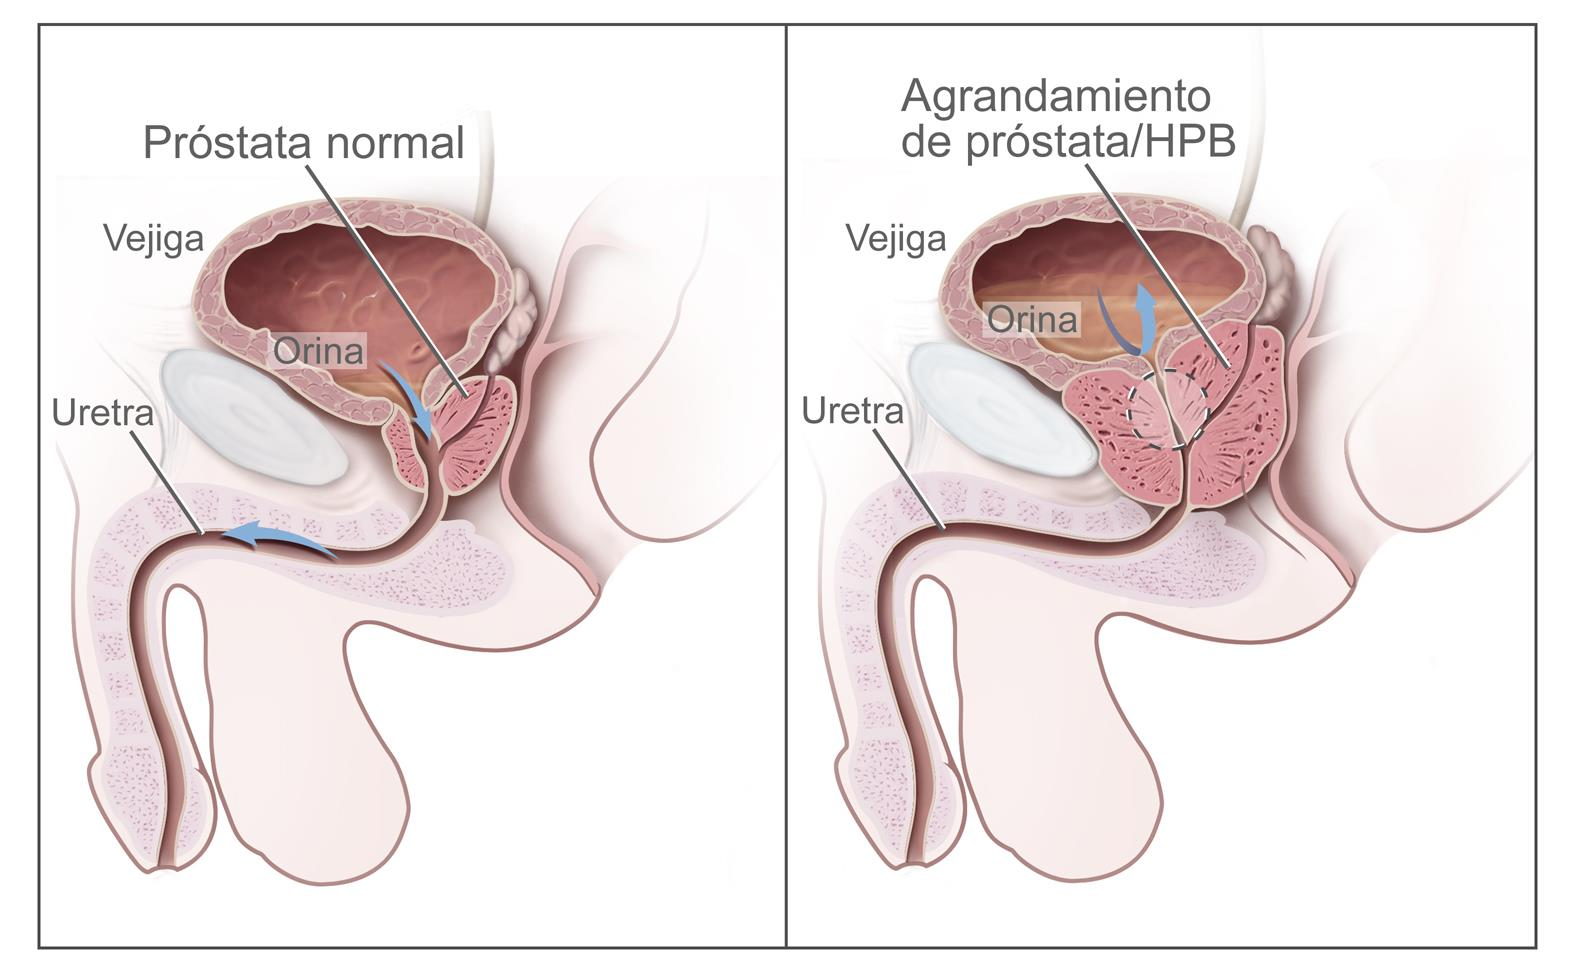 hpv and ovarian cancer